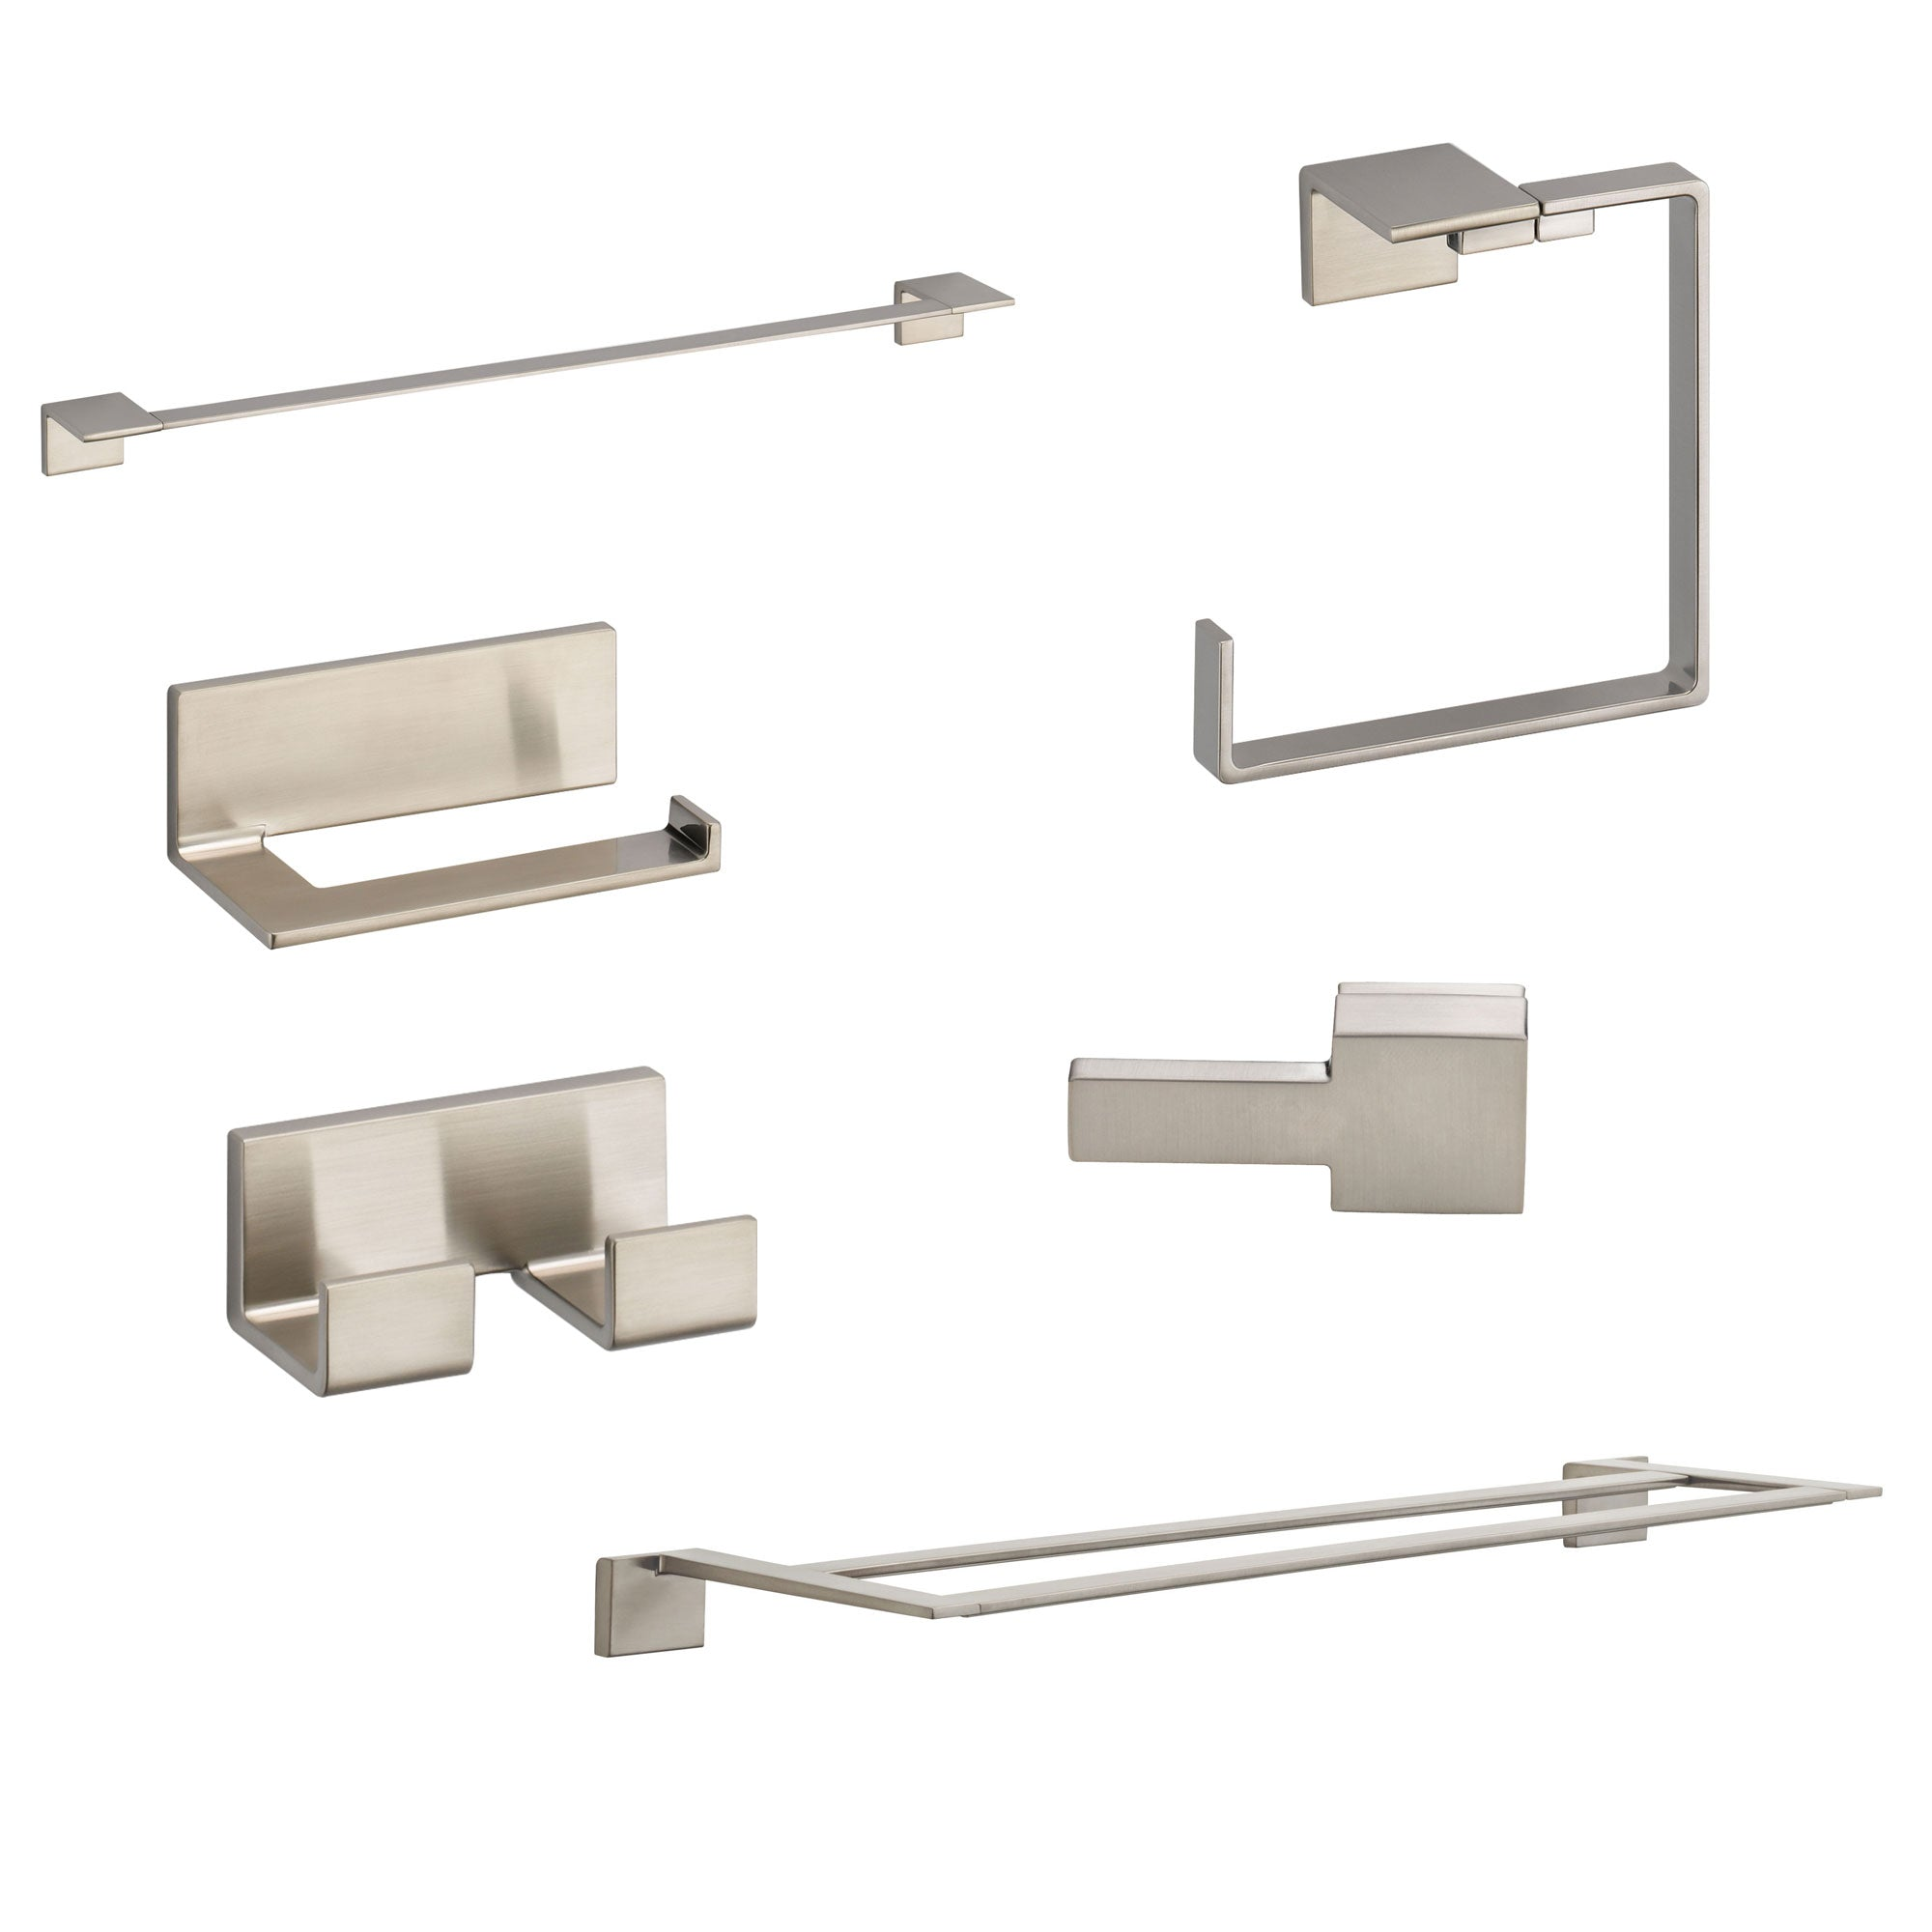 "Delta Vero Stainless Steel Finish DELUXE Accessory Set: 24"" Single and Double Towel Bar, Paper Holder, Towel Ring, Robe Hook, Tank Lever D10059AP"